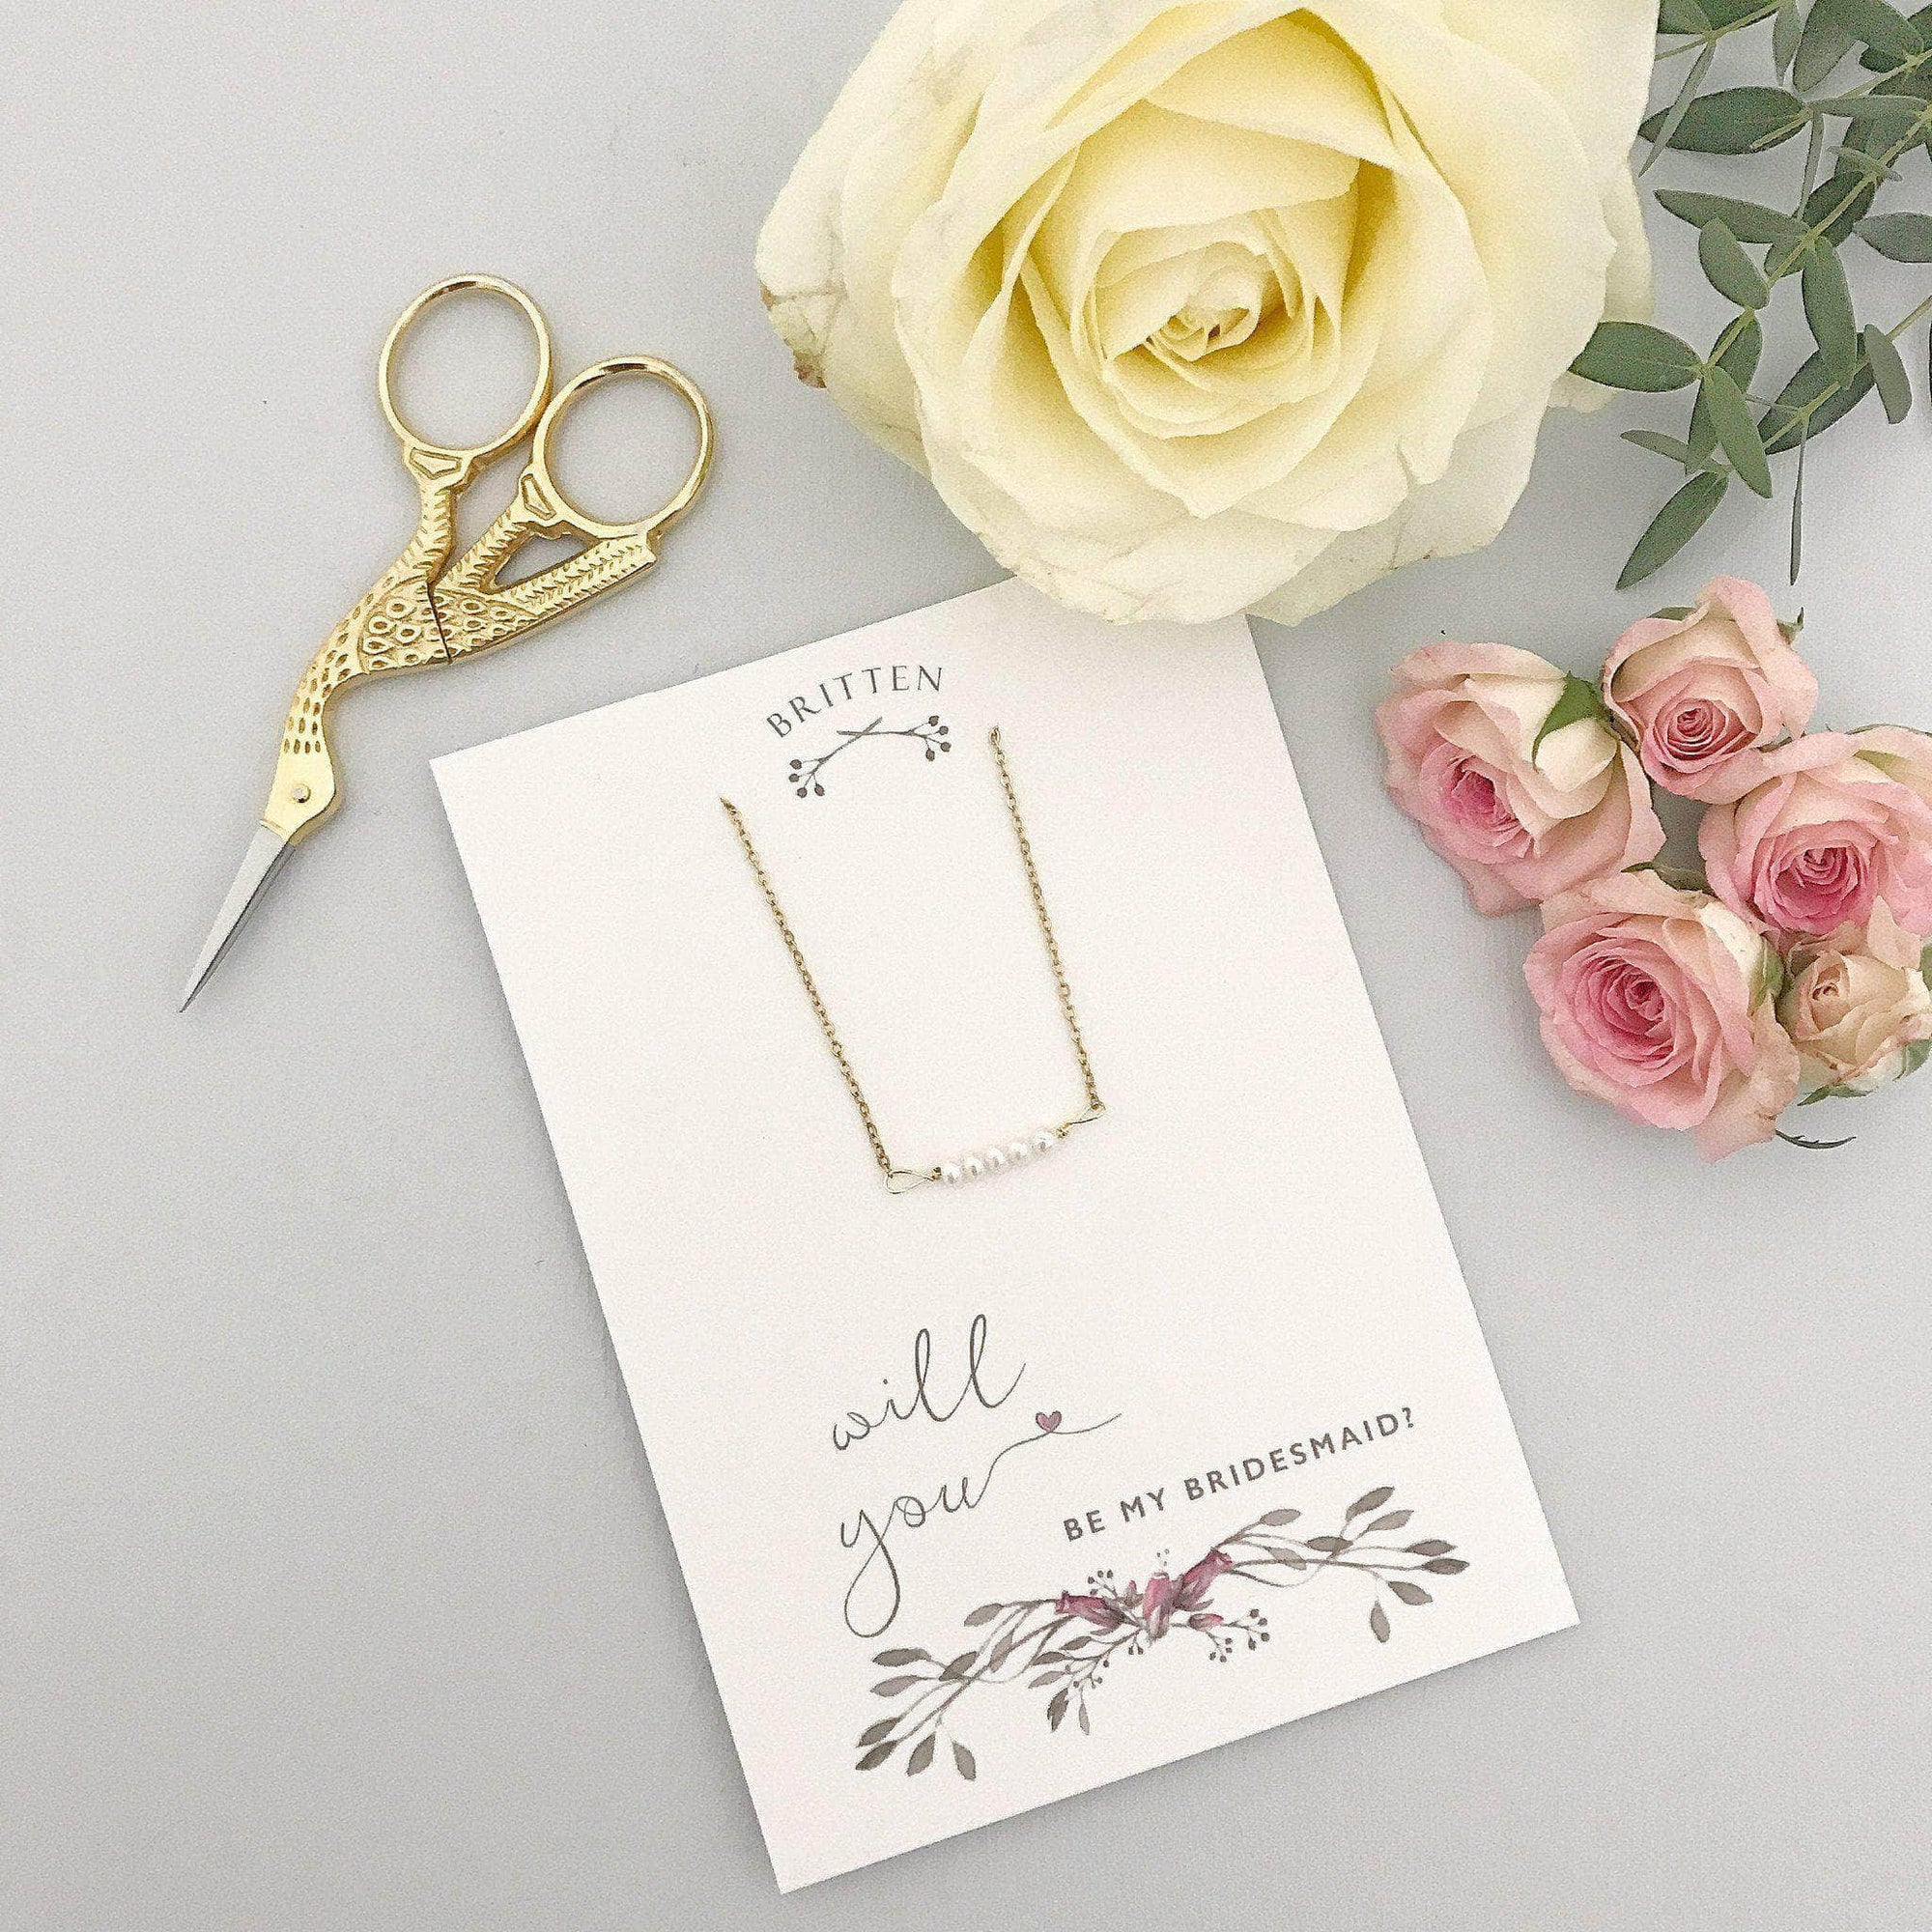 Bridesmaid Gift Gold Will you be my bridesmaid gift necklace - 'Freya' in gold